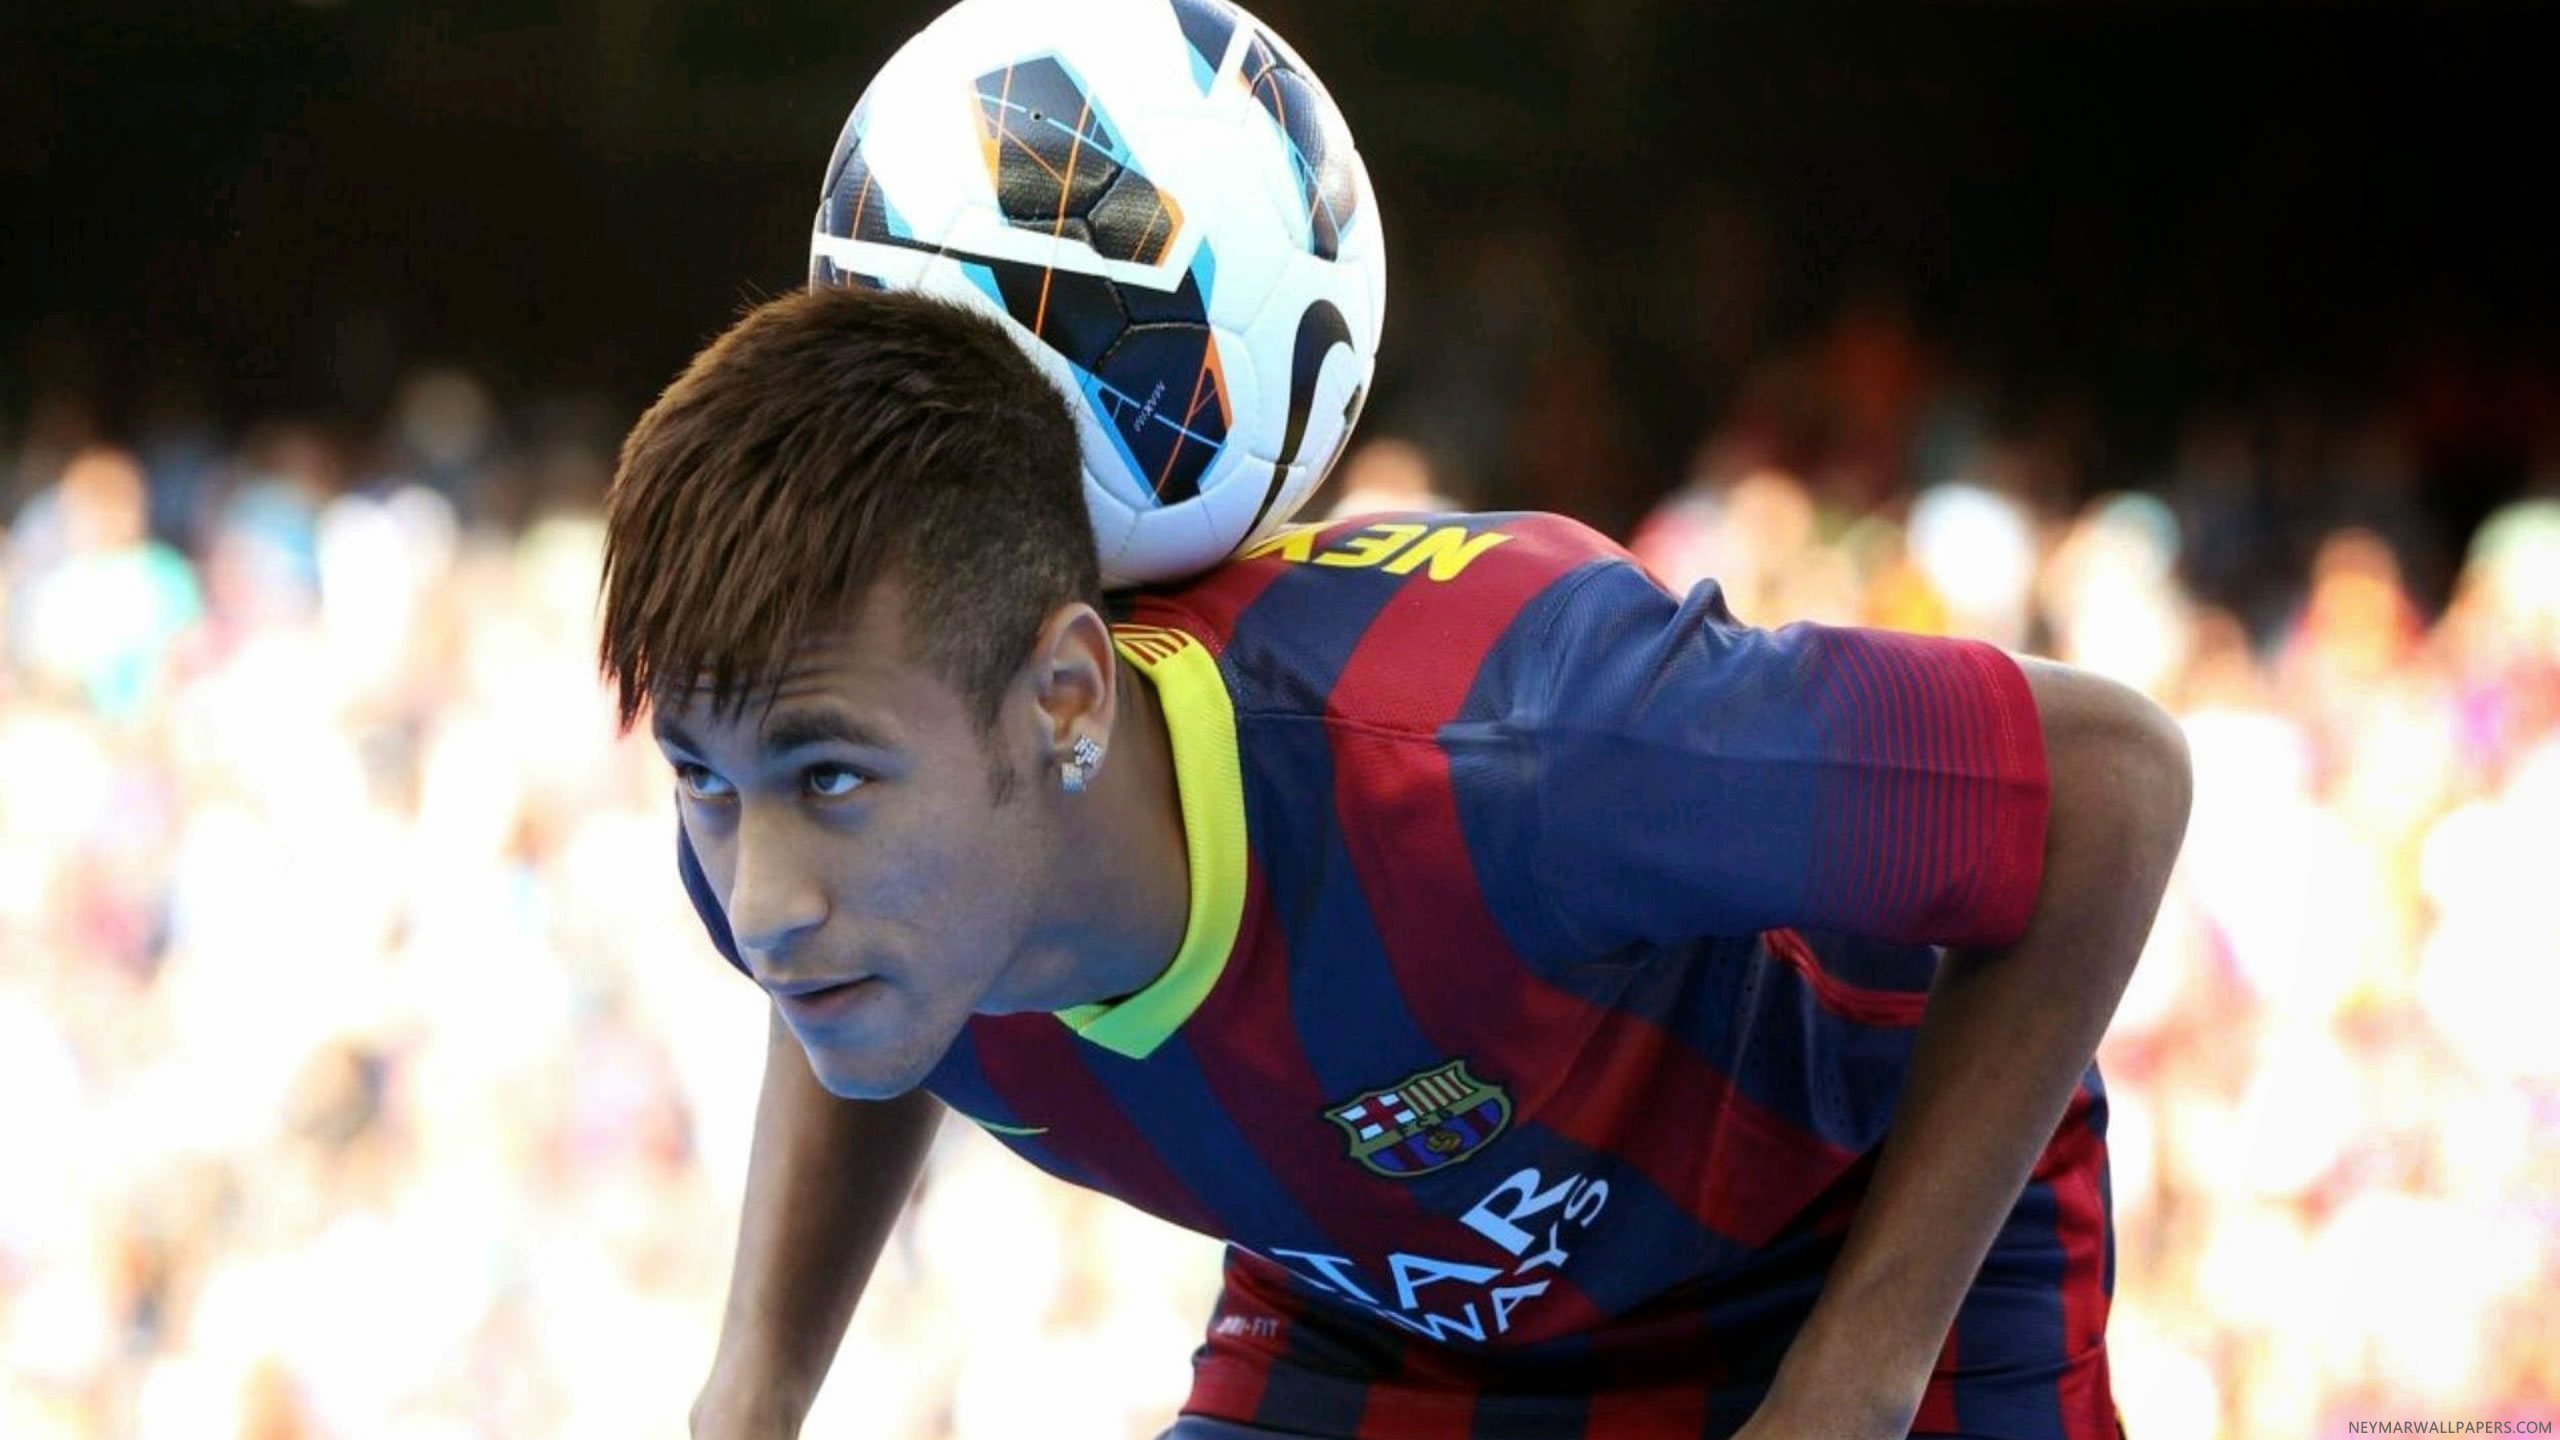 Neymar with ball wallpaper (3)